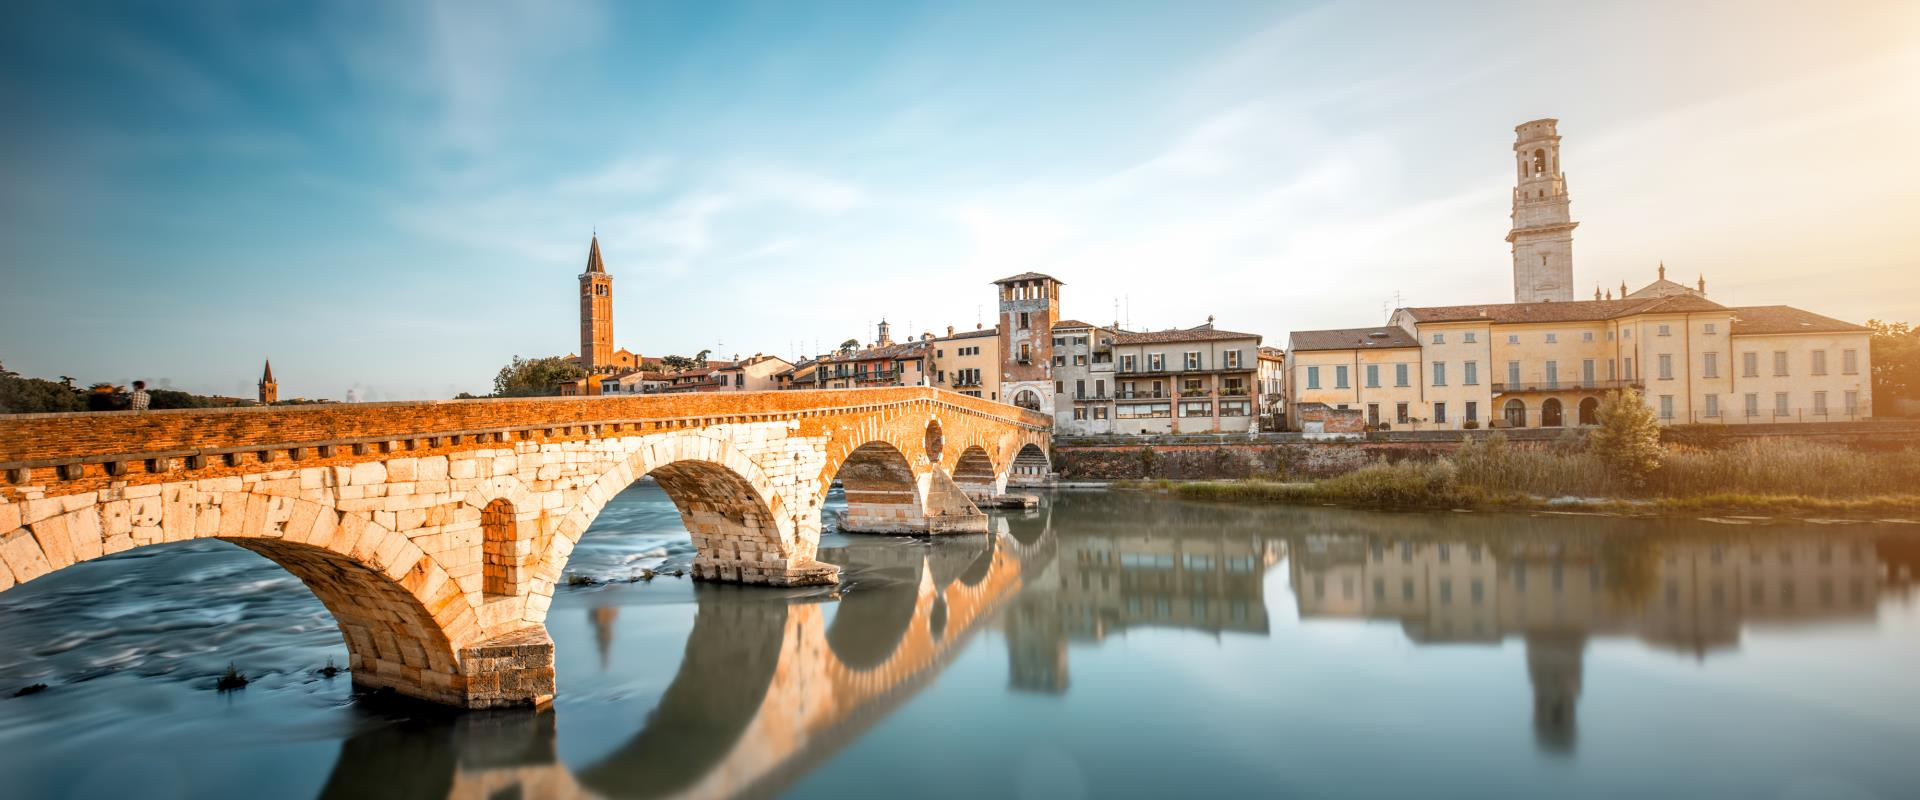 Long Stay Offer - CTC Hotel Verona - 4 star